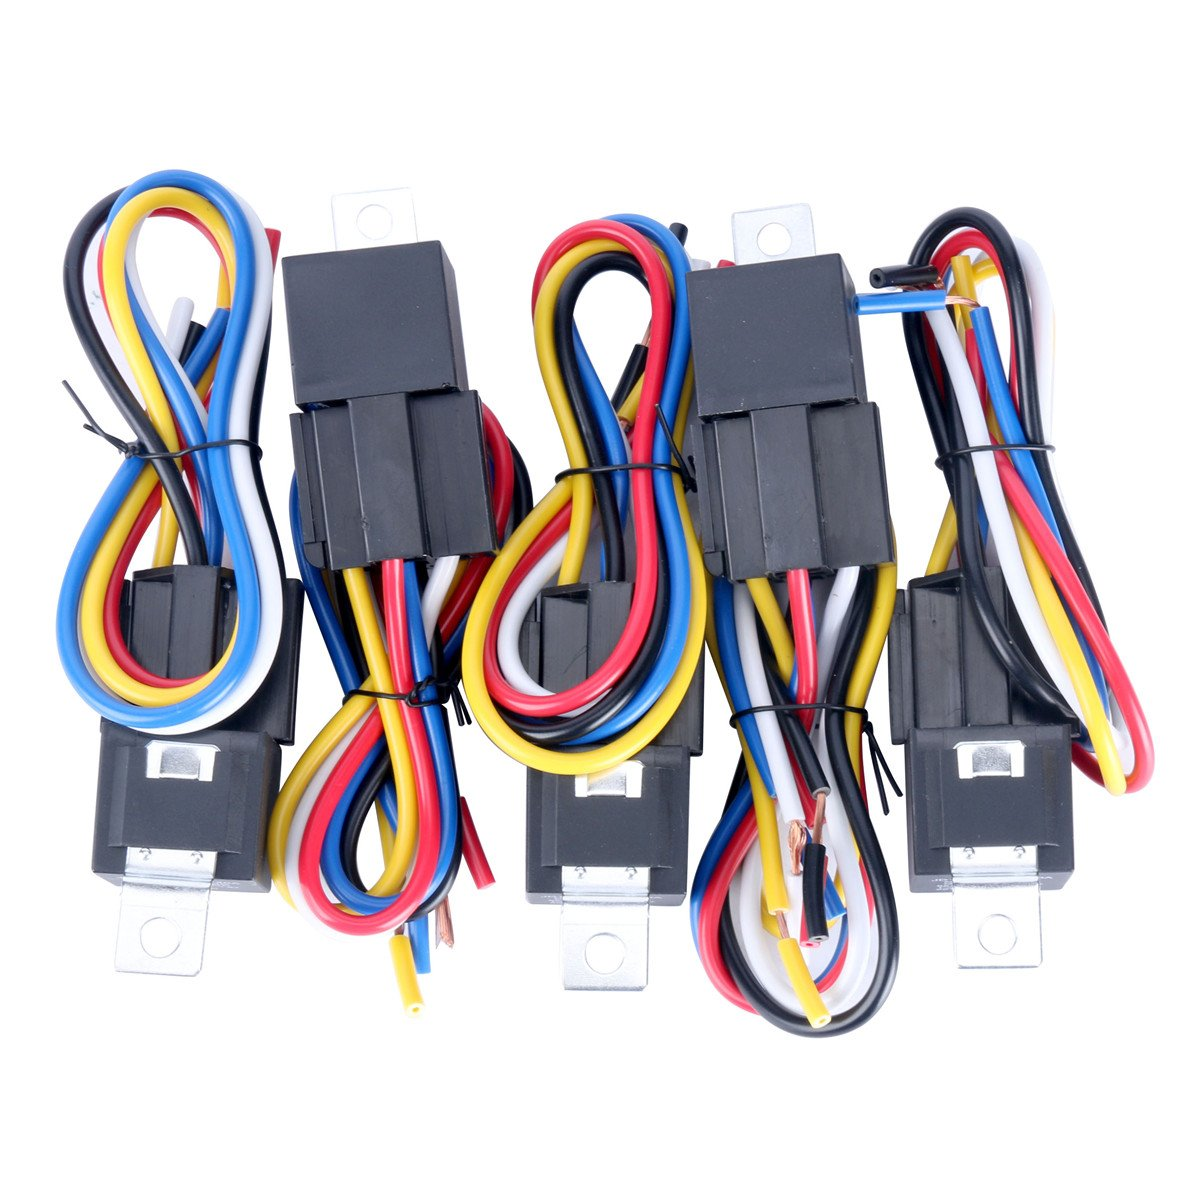 8milelake 12V 30//40 AMP SPDT Automotive Relay with Wires /& Harness Socket 5 pack